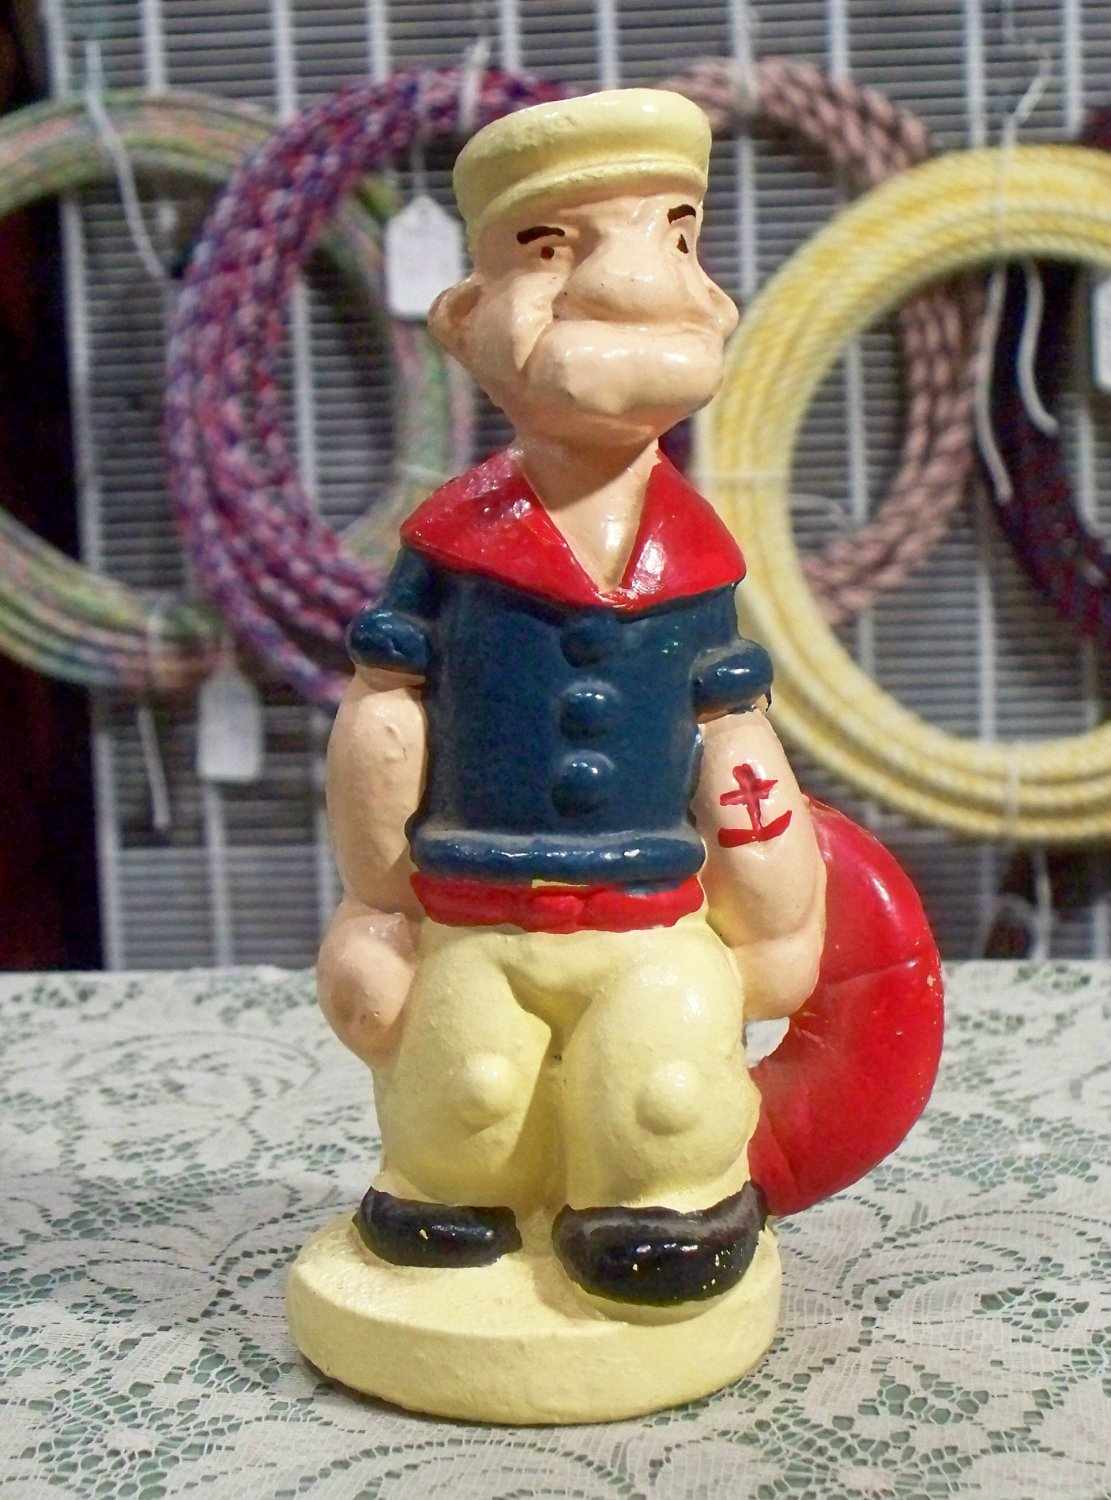 Popeye cast iron coin bank? used and empty paperweight?